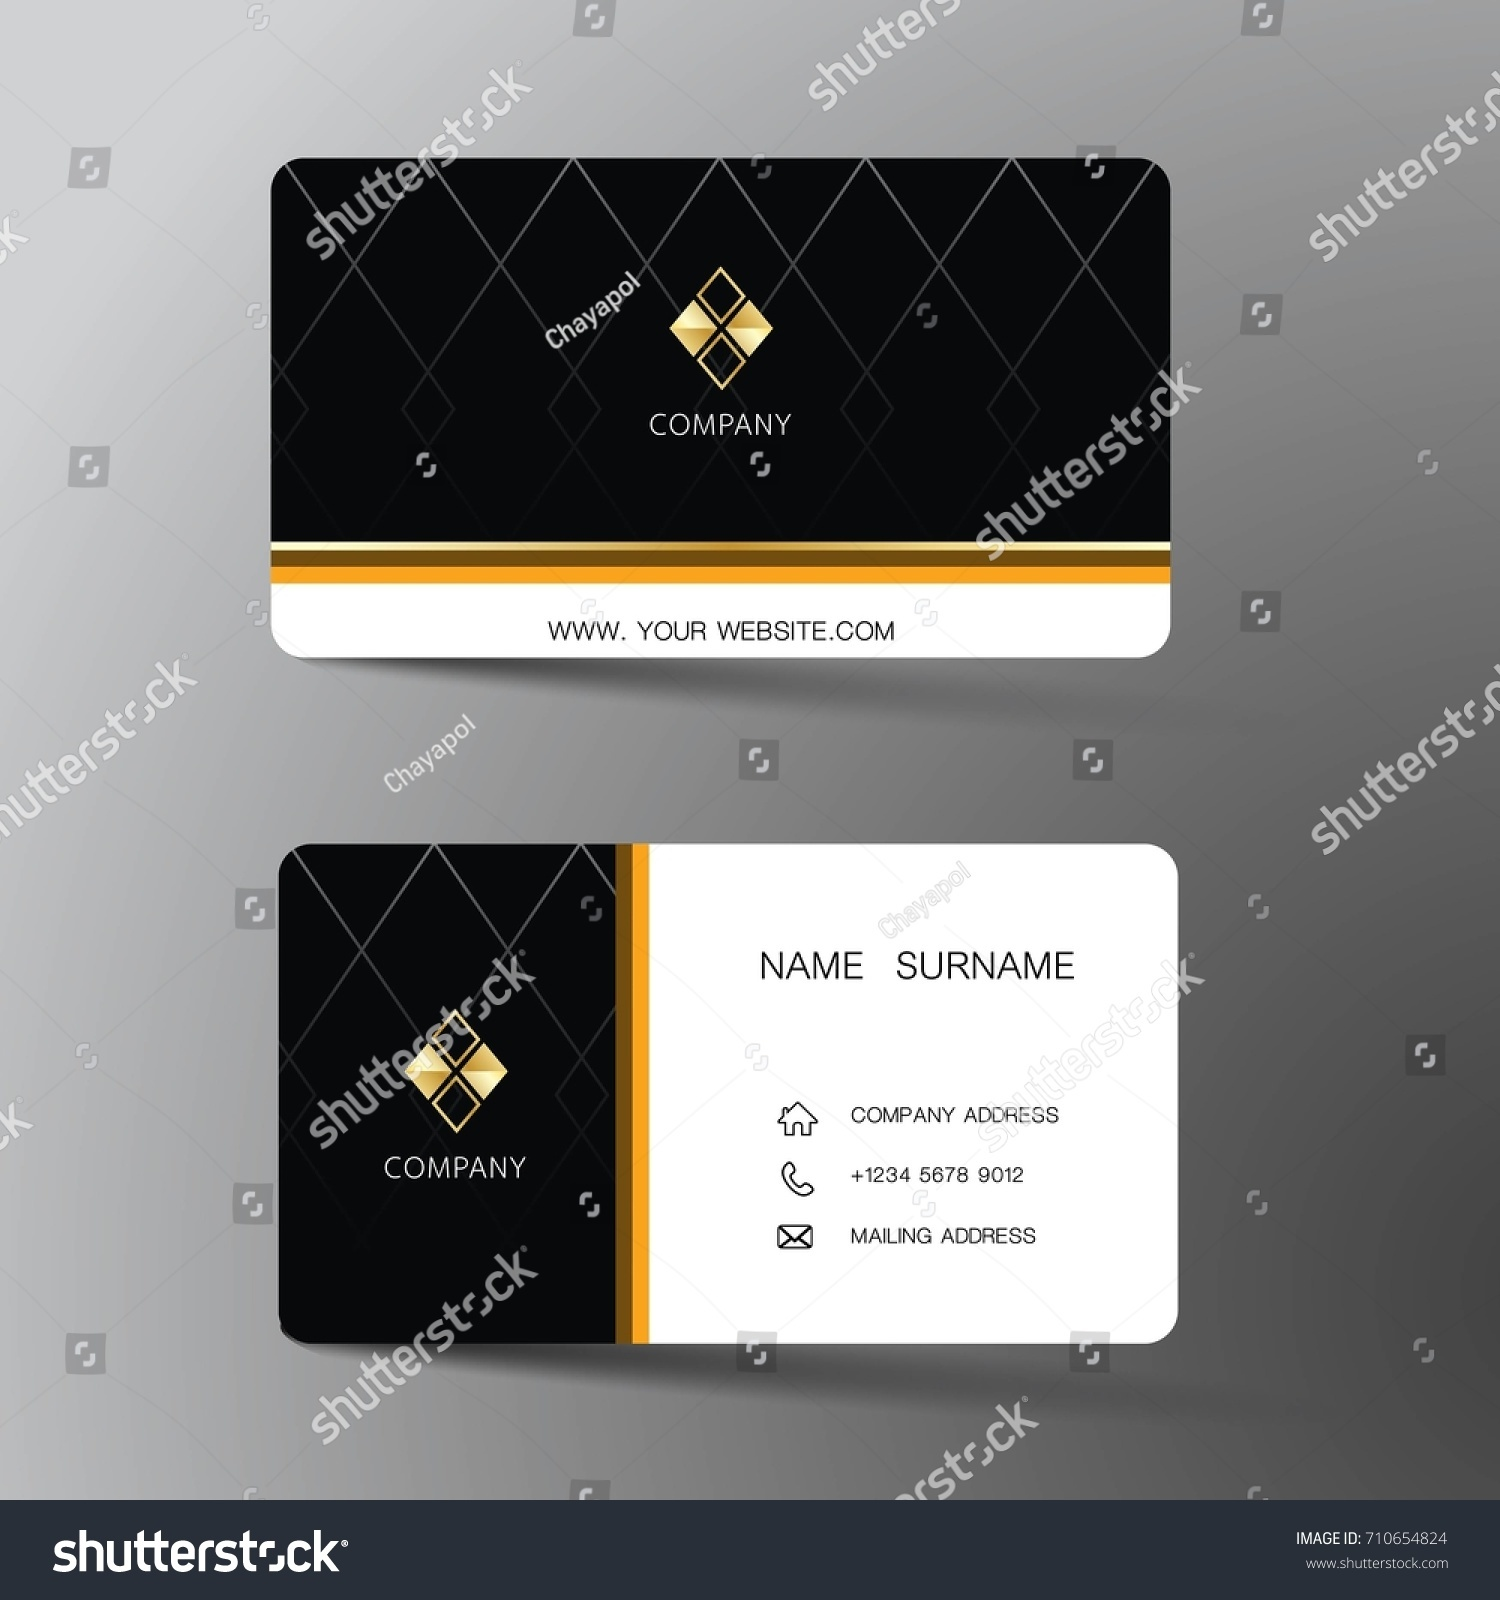 modern business card template design inspiration stock vector